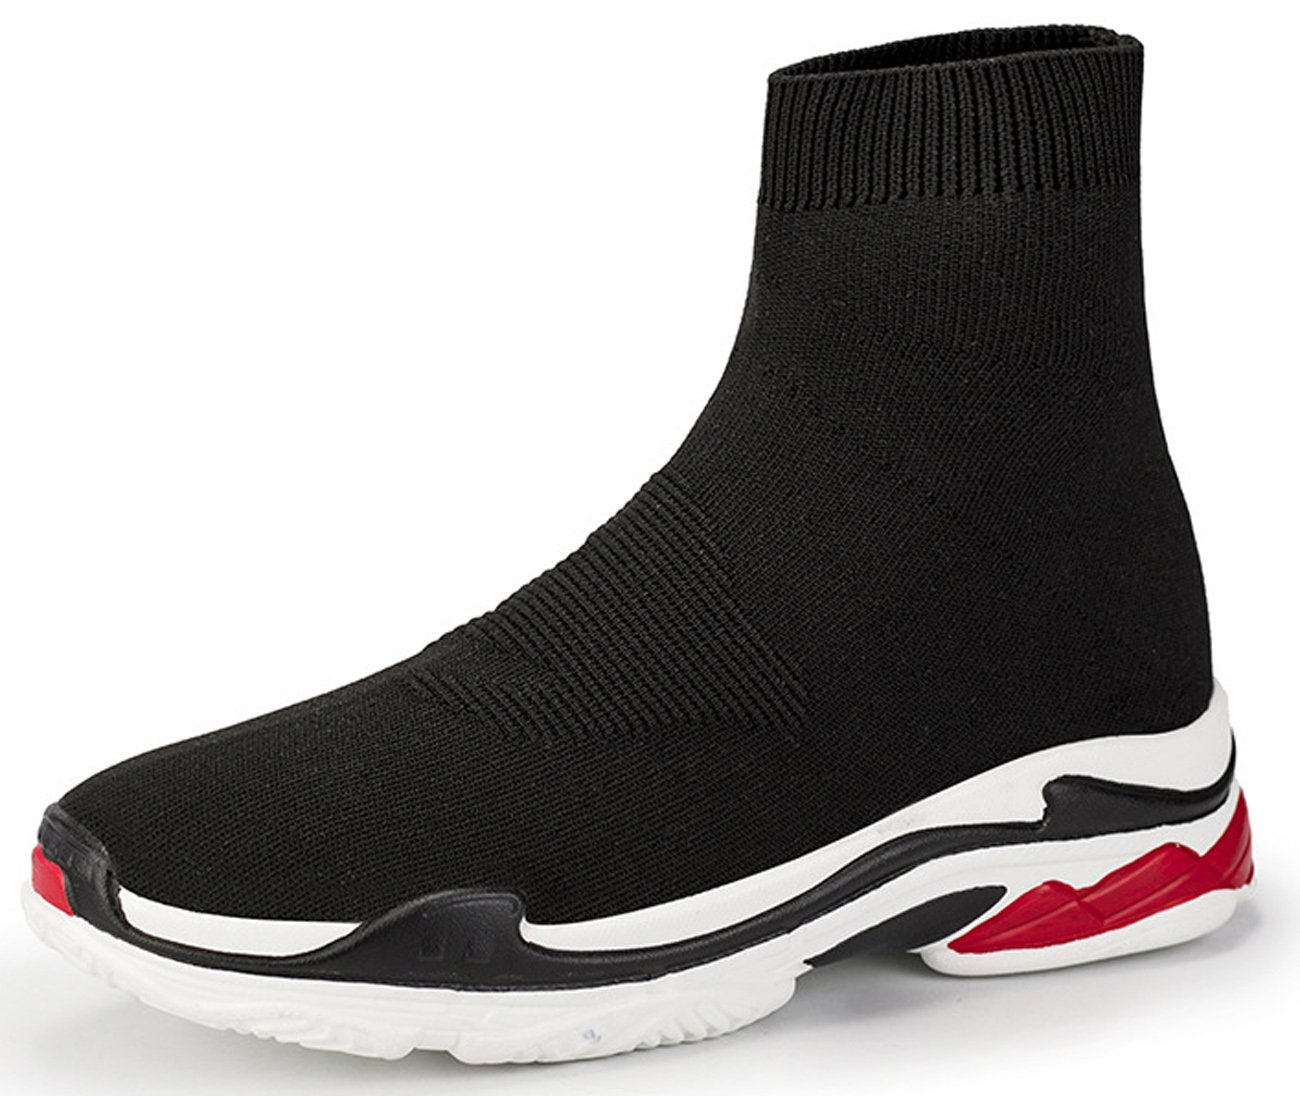 NEWCOLOR Mode Unisexe B074KGYK8Q Slip-on Haute Tricot Coupe Marche Mocassins Formateurs Confort Couple Mocassins Chaussures Tricot Gym Baskets Noir Rouge 28a3d62 - automatisms.space